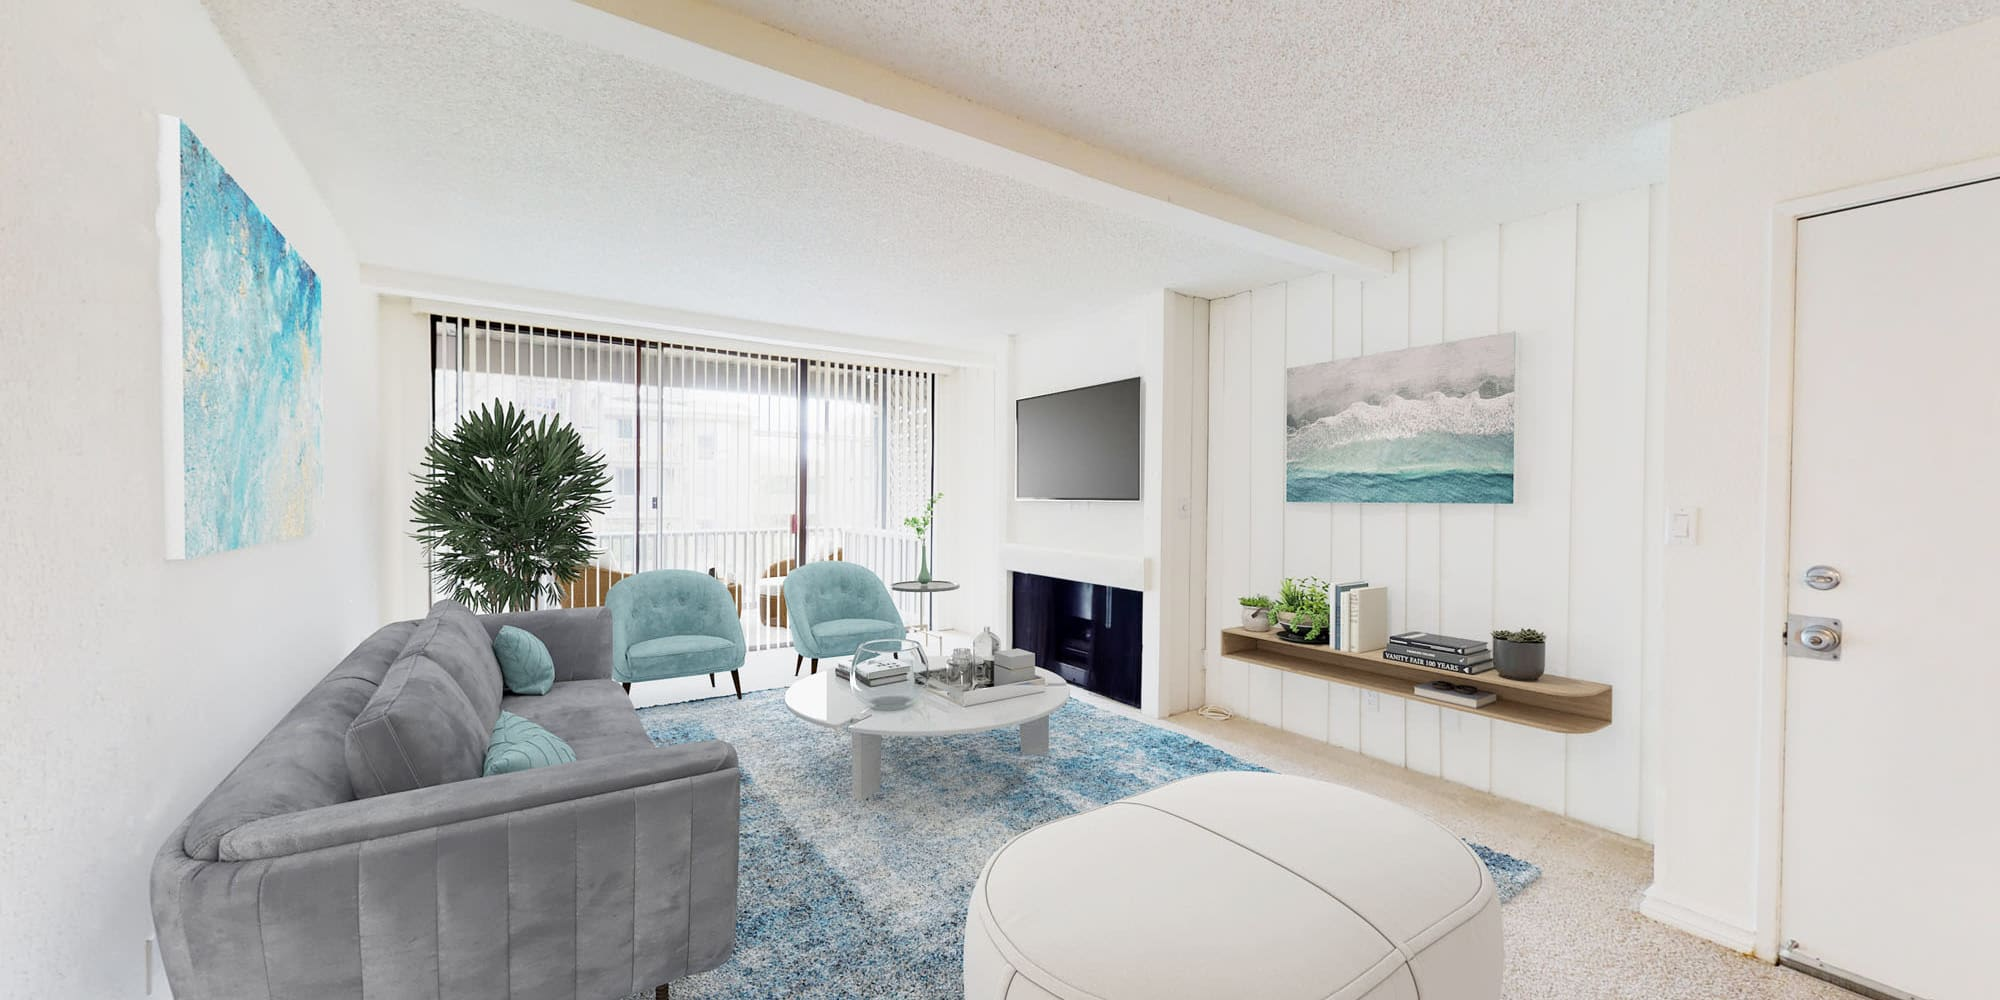 Vaulted ceiling and modern furnishings in a model home's living area at Mariners Village in Marina del Rey, California